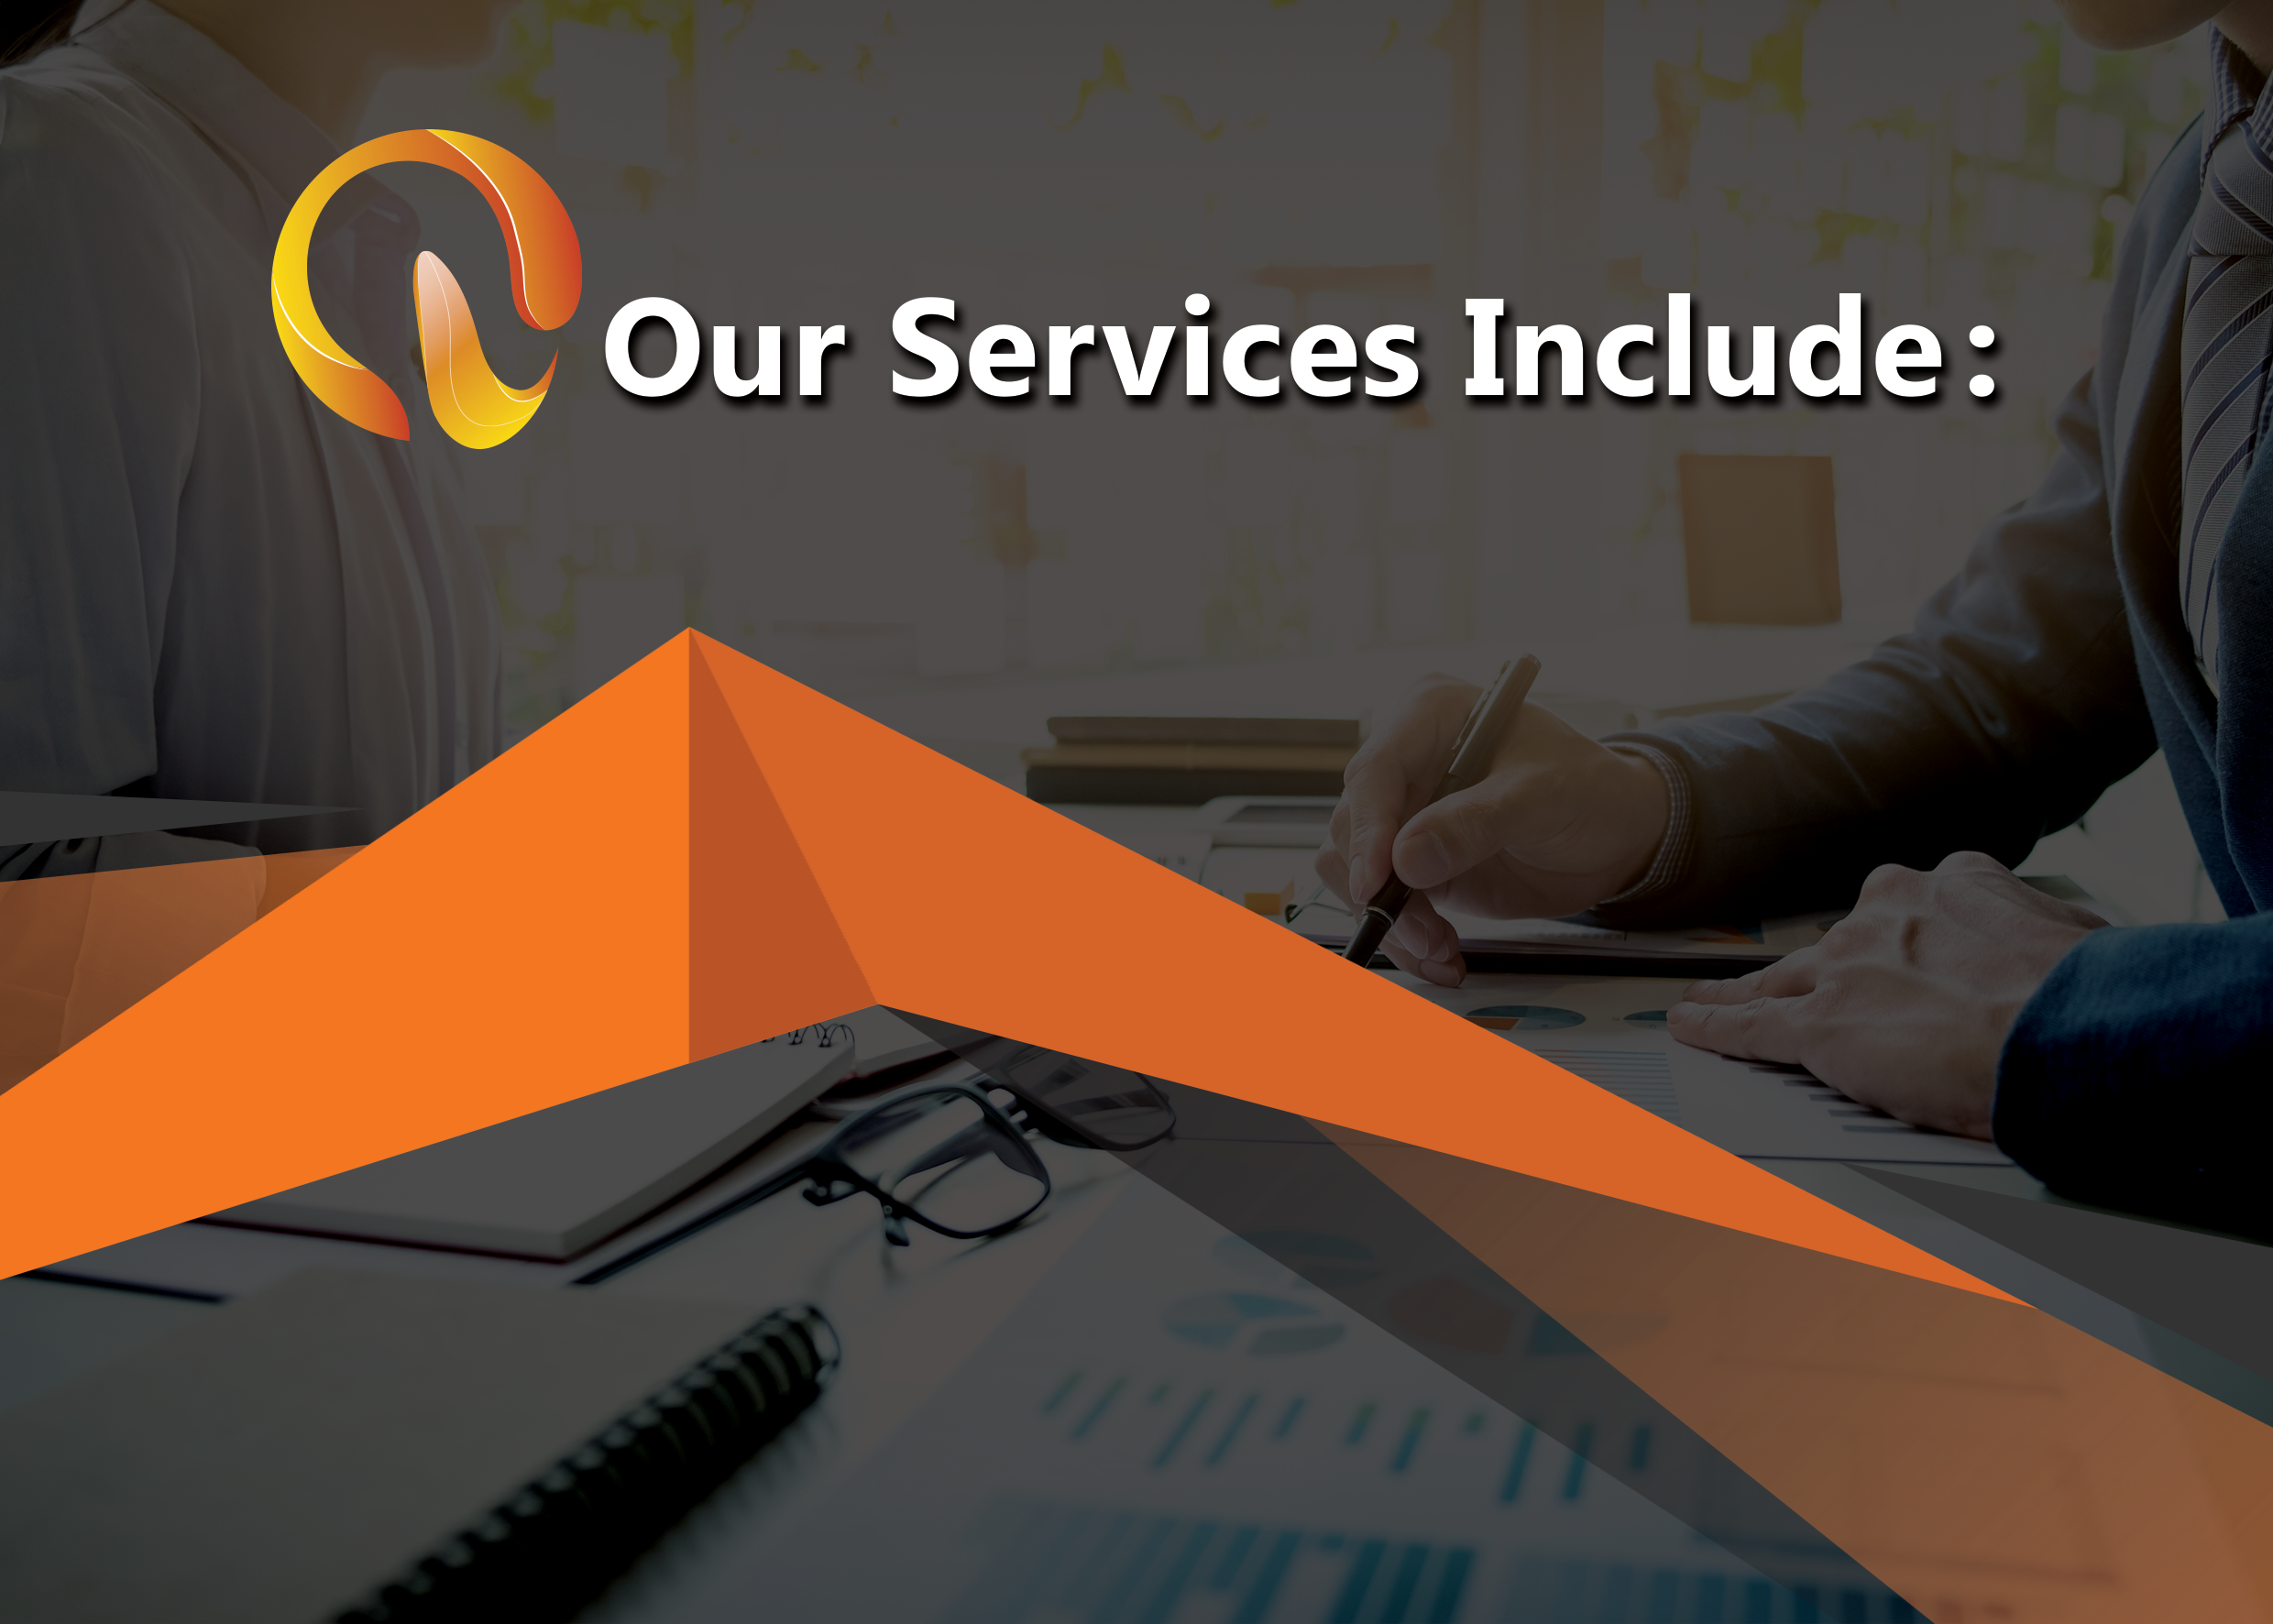 QUARTZ SERVICES include